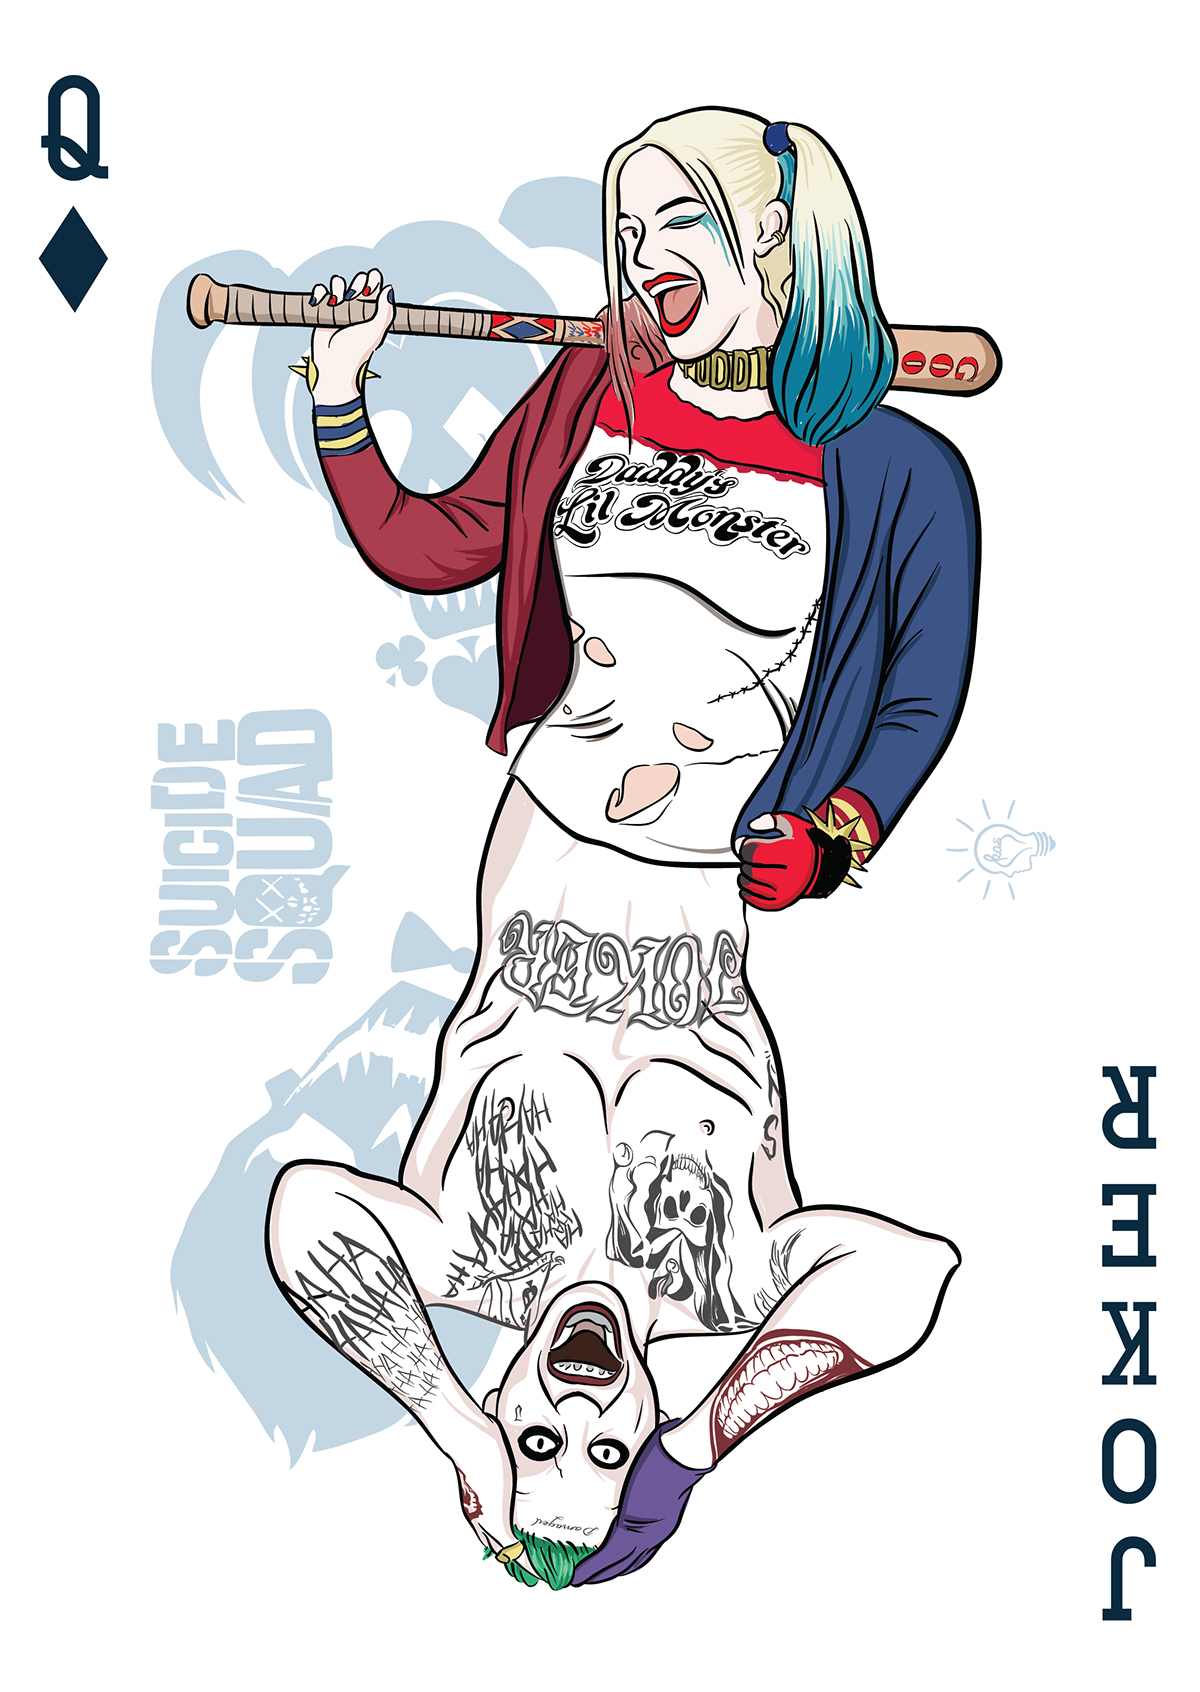 Joker and harley clipart jpg royalty free download Suicide Squad - The Joker & Harley Quinn Playing Card on Behance jpg royalty free download